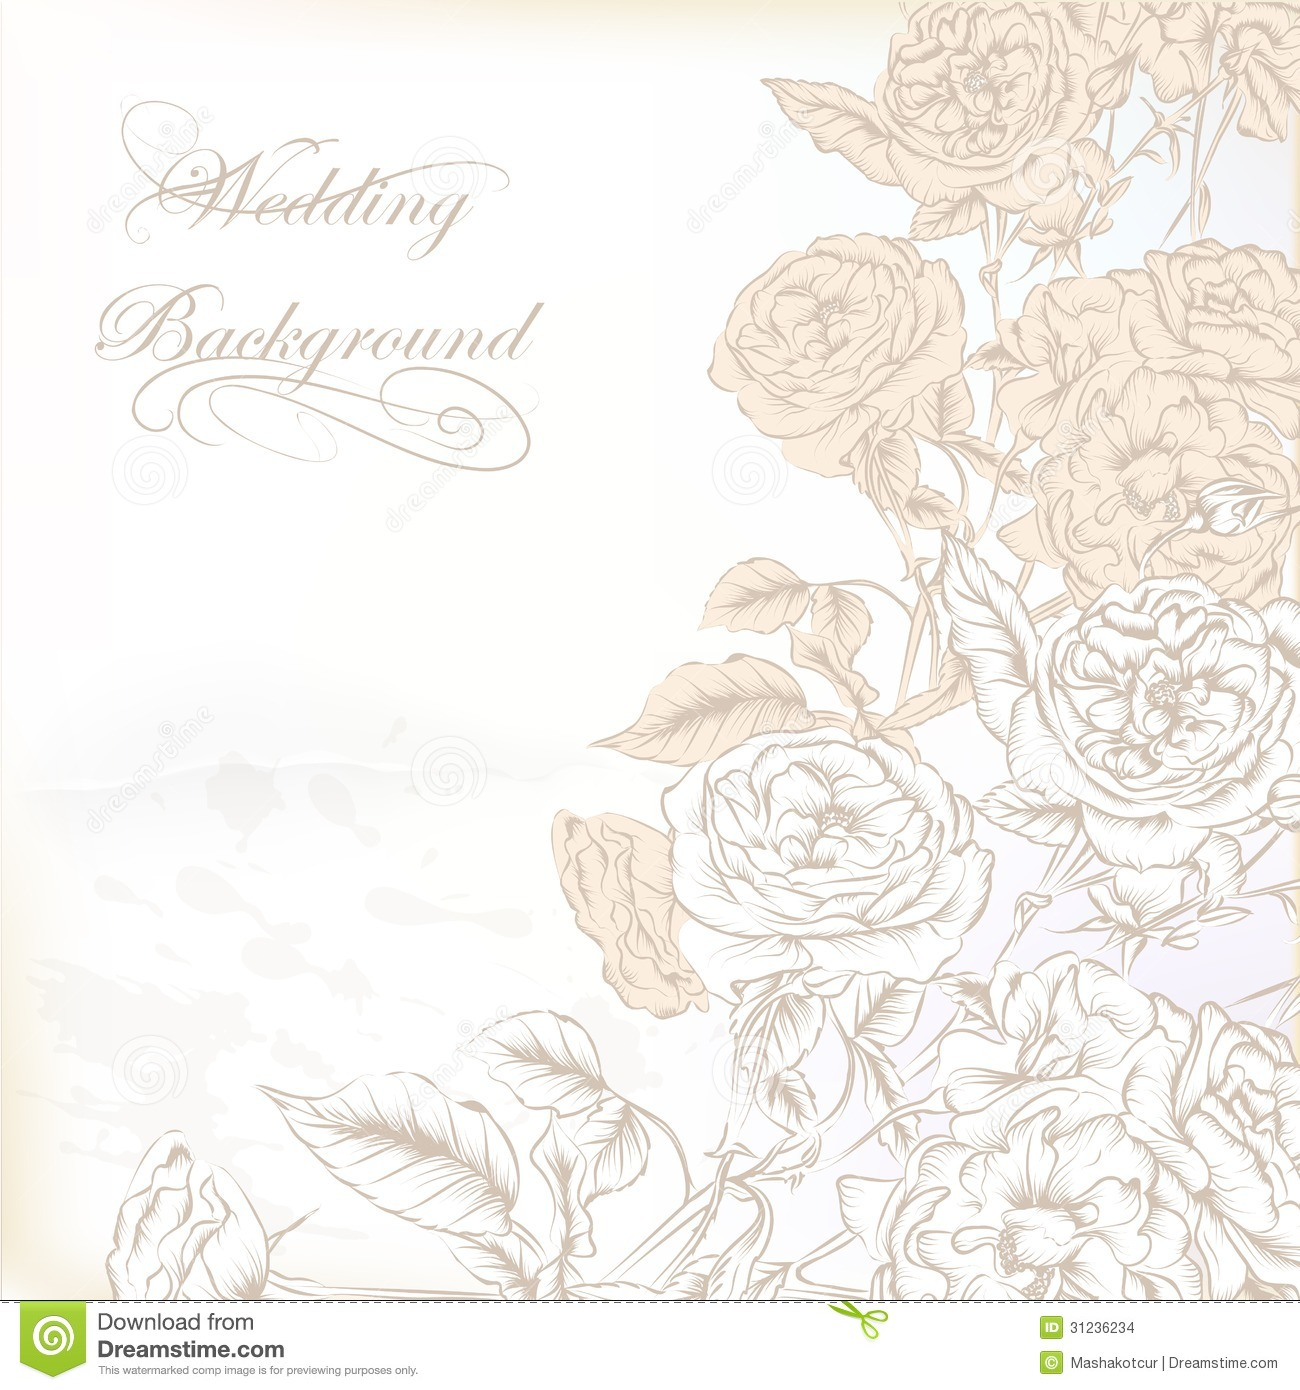 Elegant Wedding Background With Hand Drawn Roses For Design